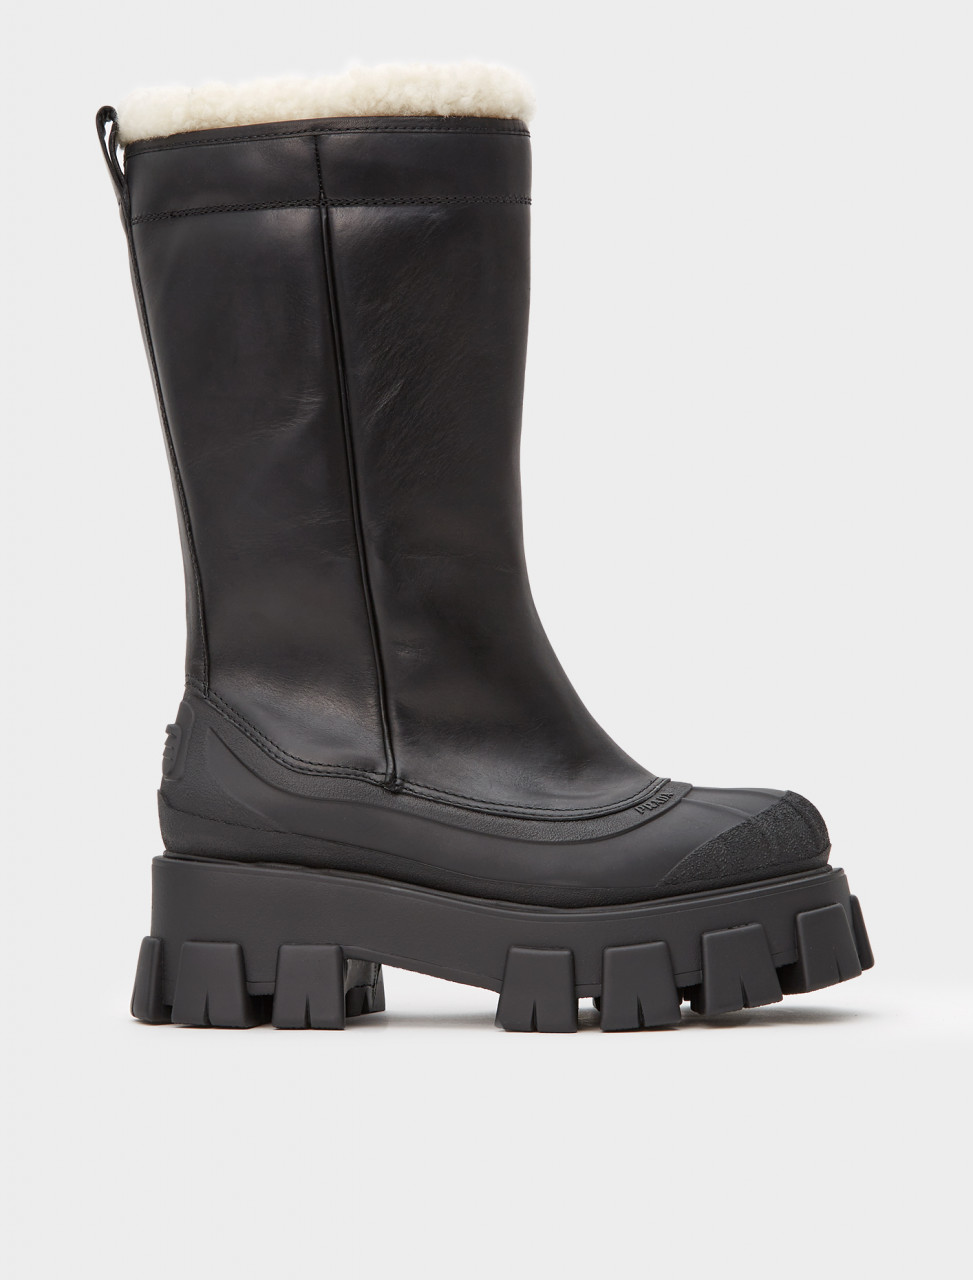 242-1W380M-3A6N-F0889-F-ZF55 PRADA SHEARLING LINED MONOLITH BOOT NERO NATURAL